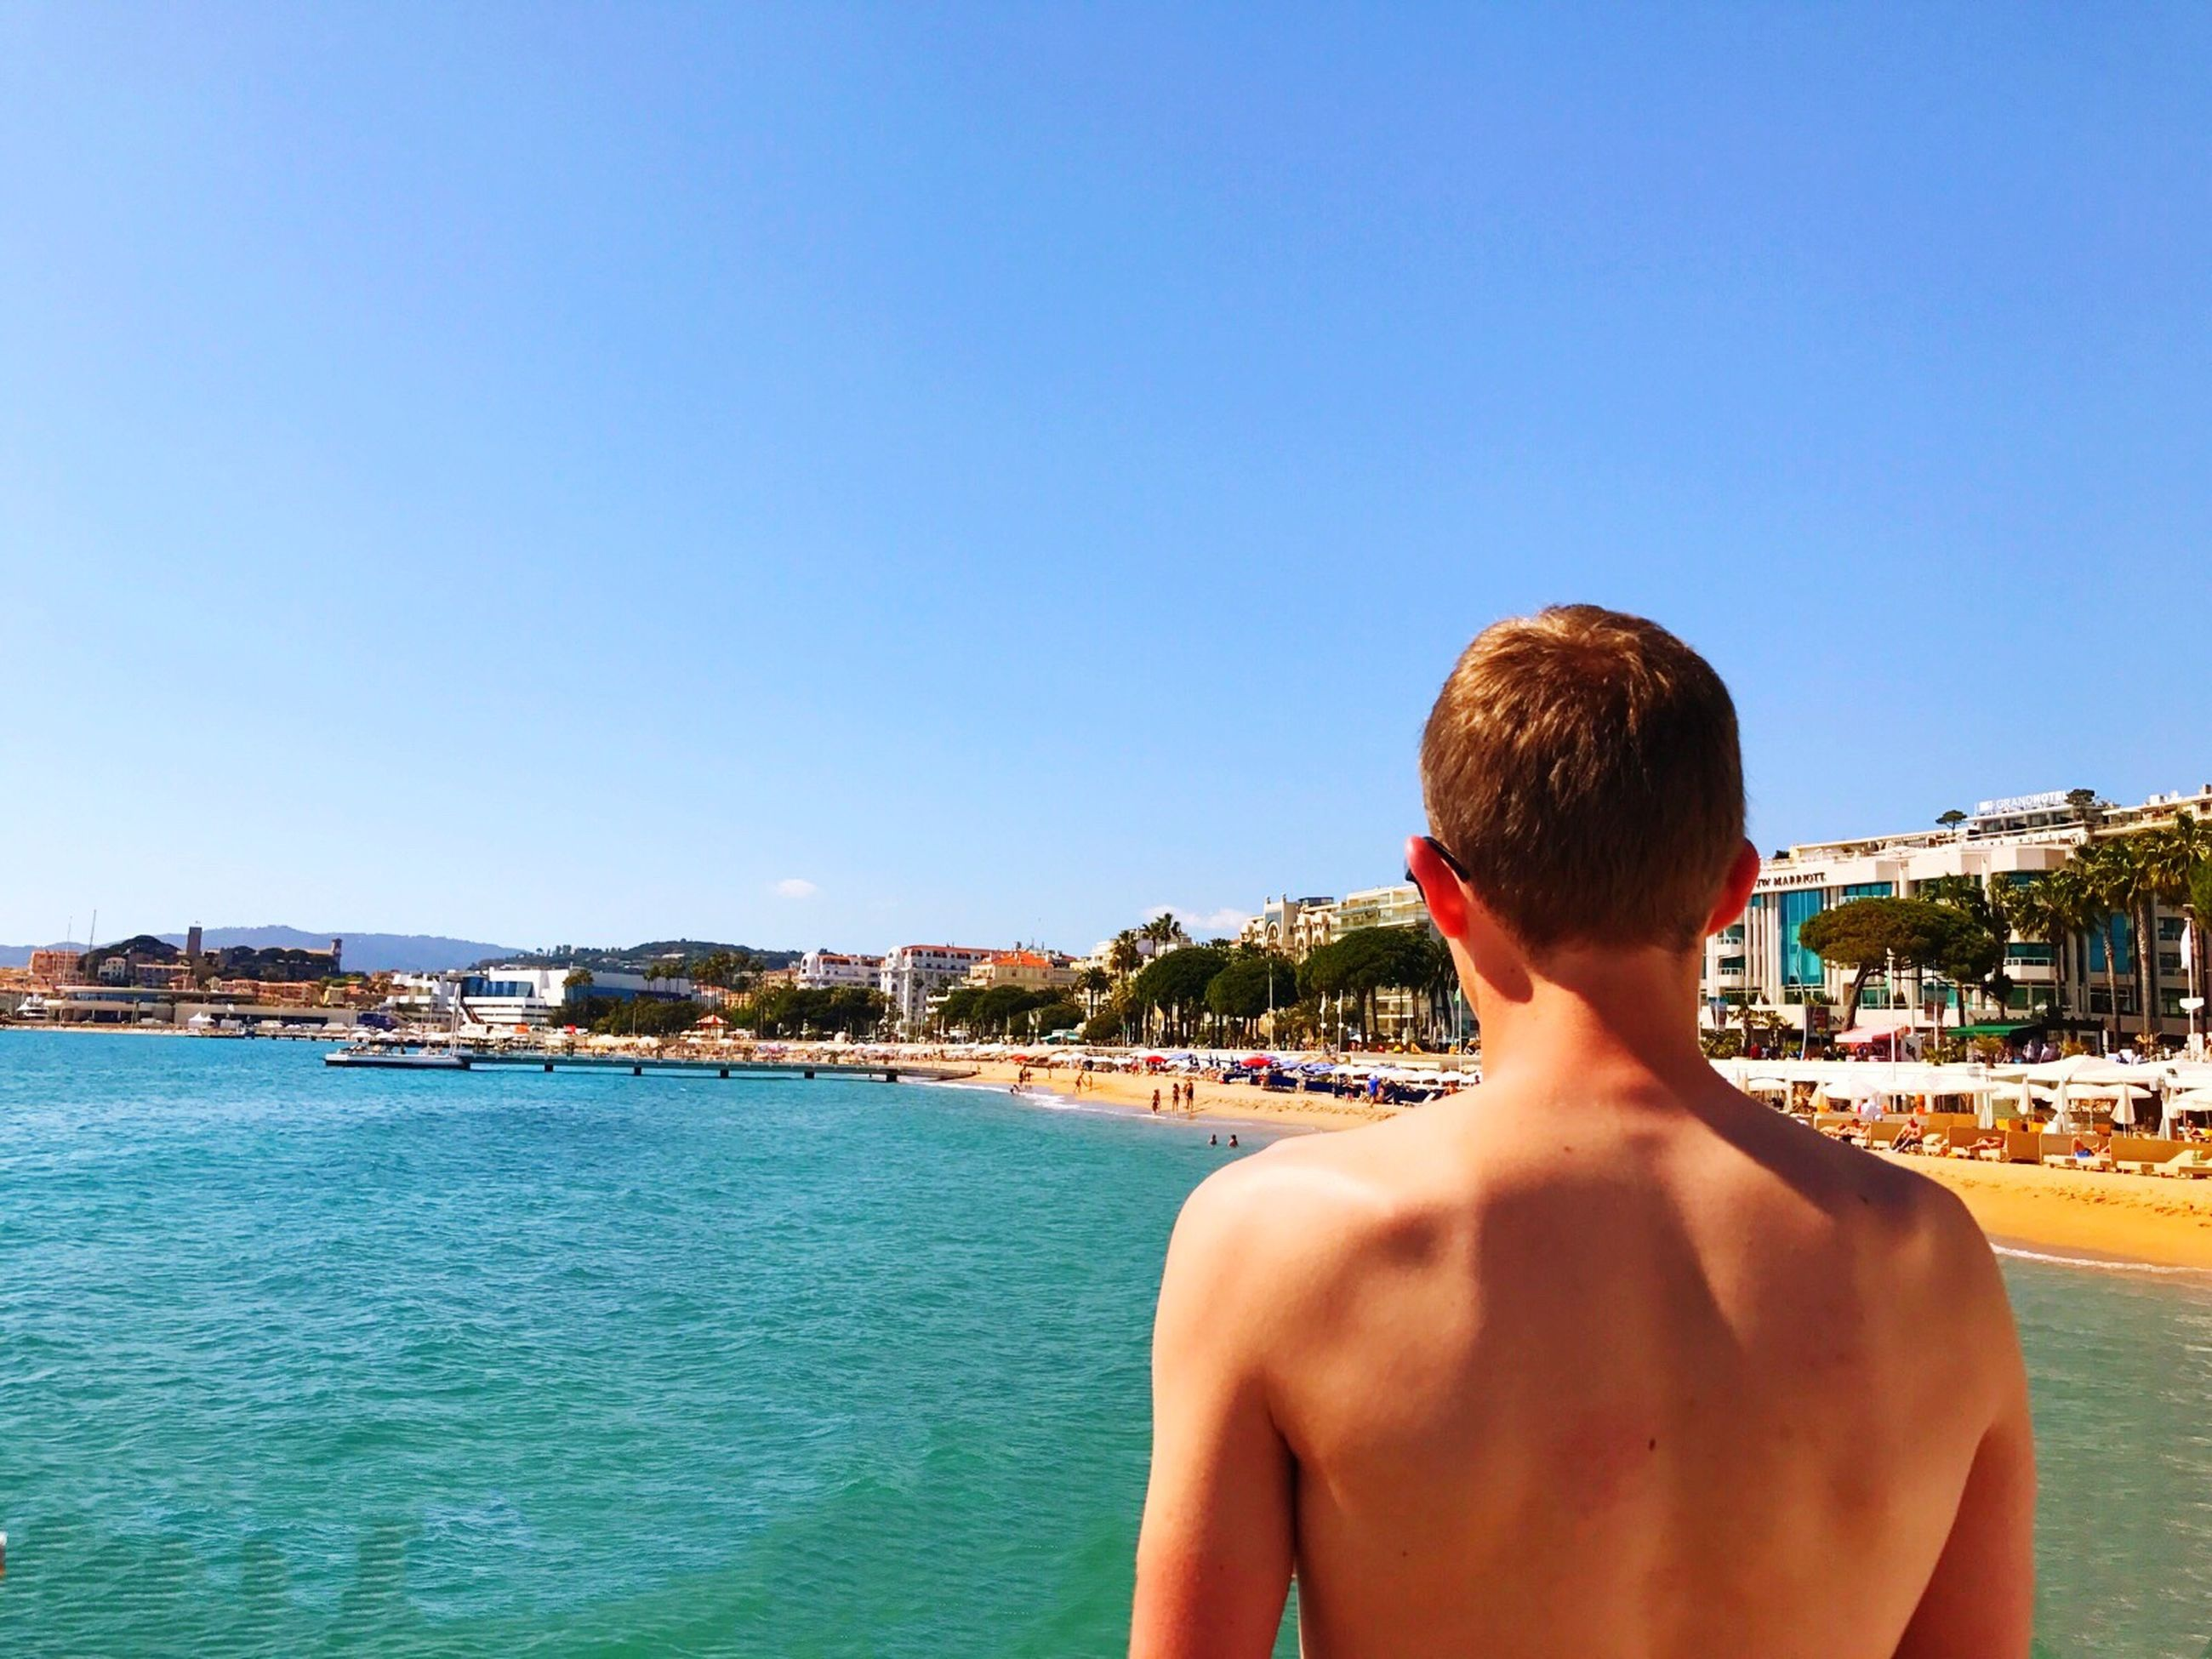 rear view, water, sea, one person, blue, clear sky, leisure activity, lifestyles, day, sunlight, outdoors, shirtless, headshot, vacations, real people, beauty in nature, sky, scenics, swimming pool, beach, horizon over water, young adult, men, adult, one man only, nature, adults only, people, only men